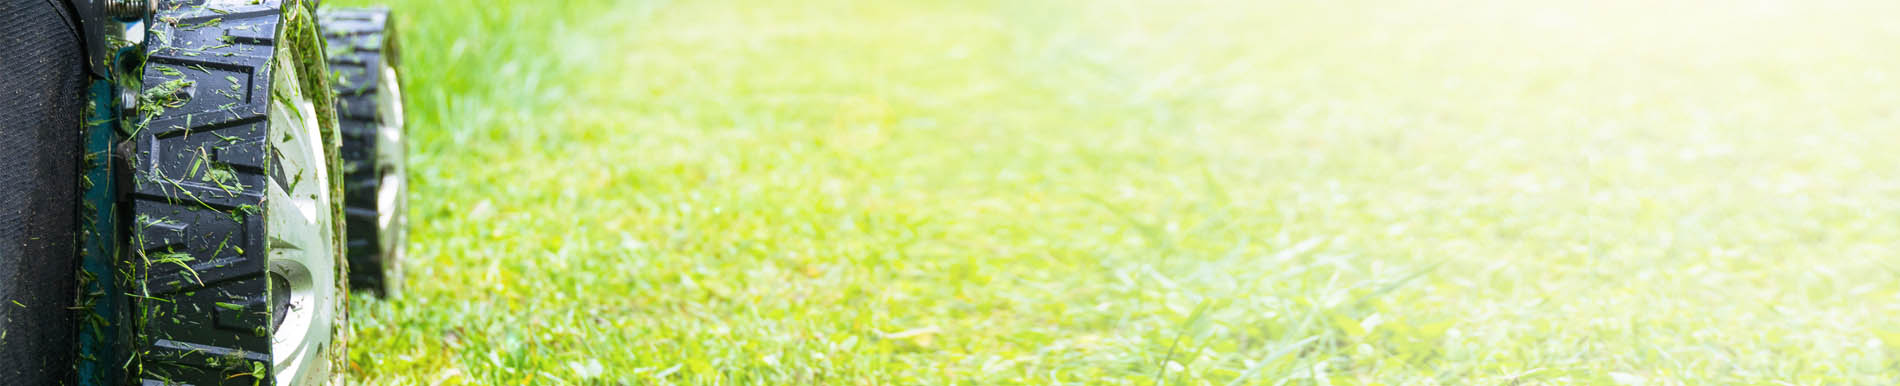 https://www.healthychildren.org/SiteCollectionImage-Homepage-Banners/LawnMower_Header.jpg